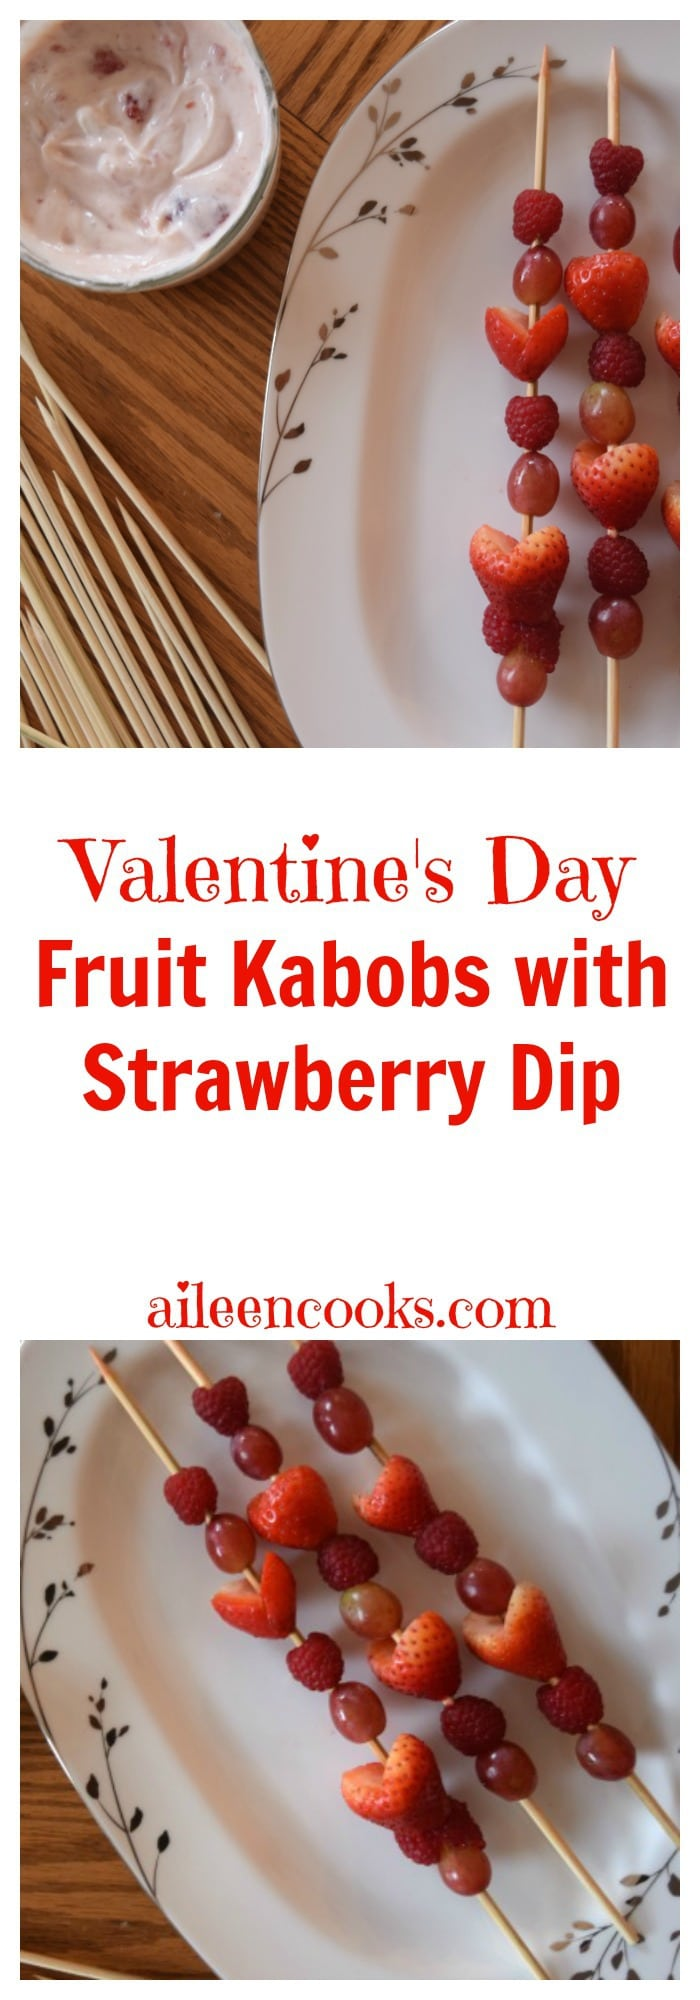 Make this healthy valentine's day snack for kids. Fruit Kabobs with Strawberry Dip. This is a yummy and healthy snack that is perfect for a cooking with kids activity. Recipe from aileencooks.com.